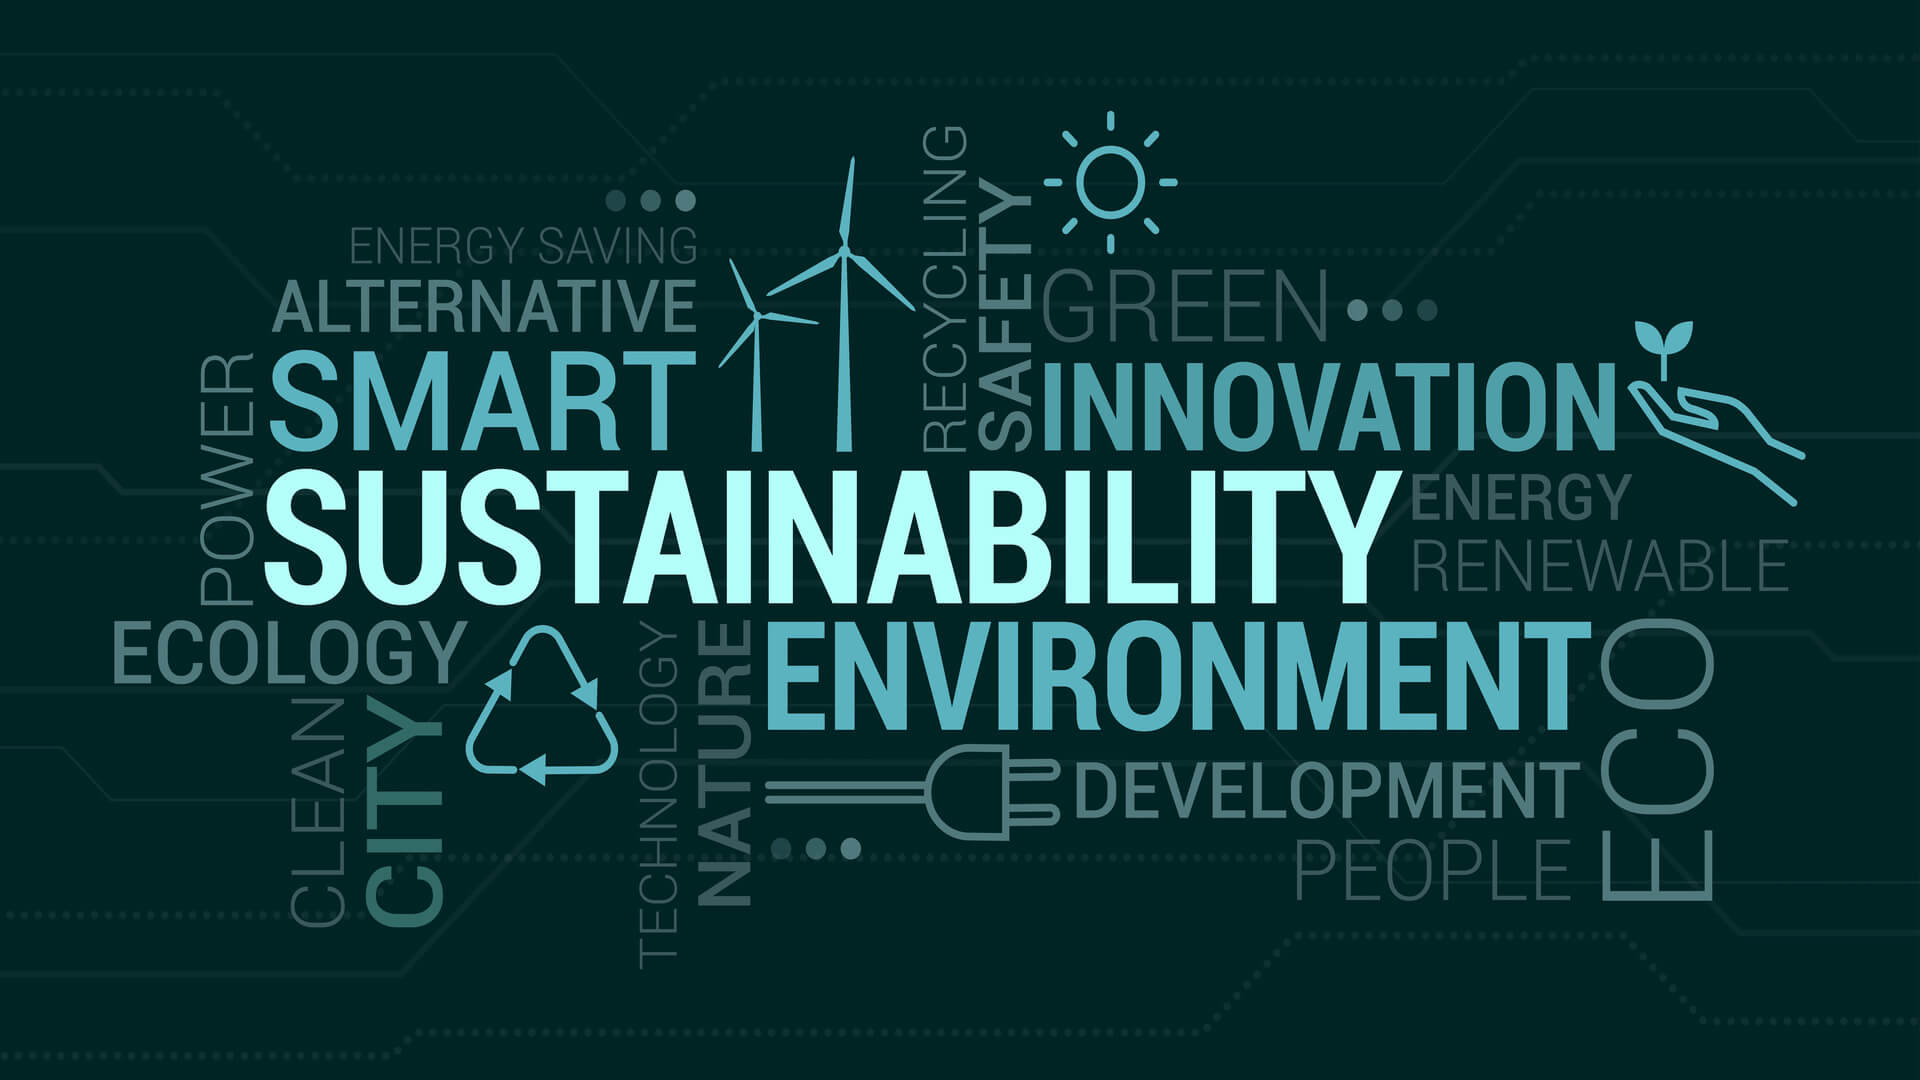 environment, sustainability technology innovation